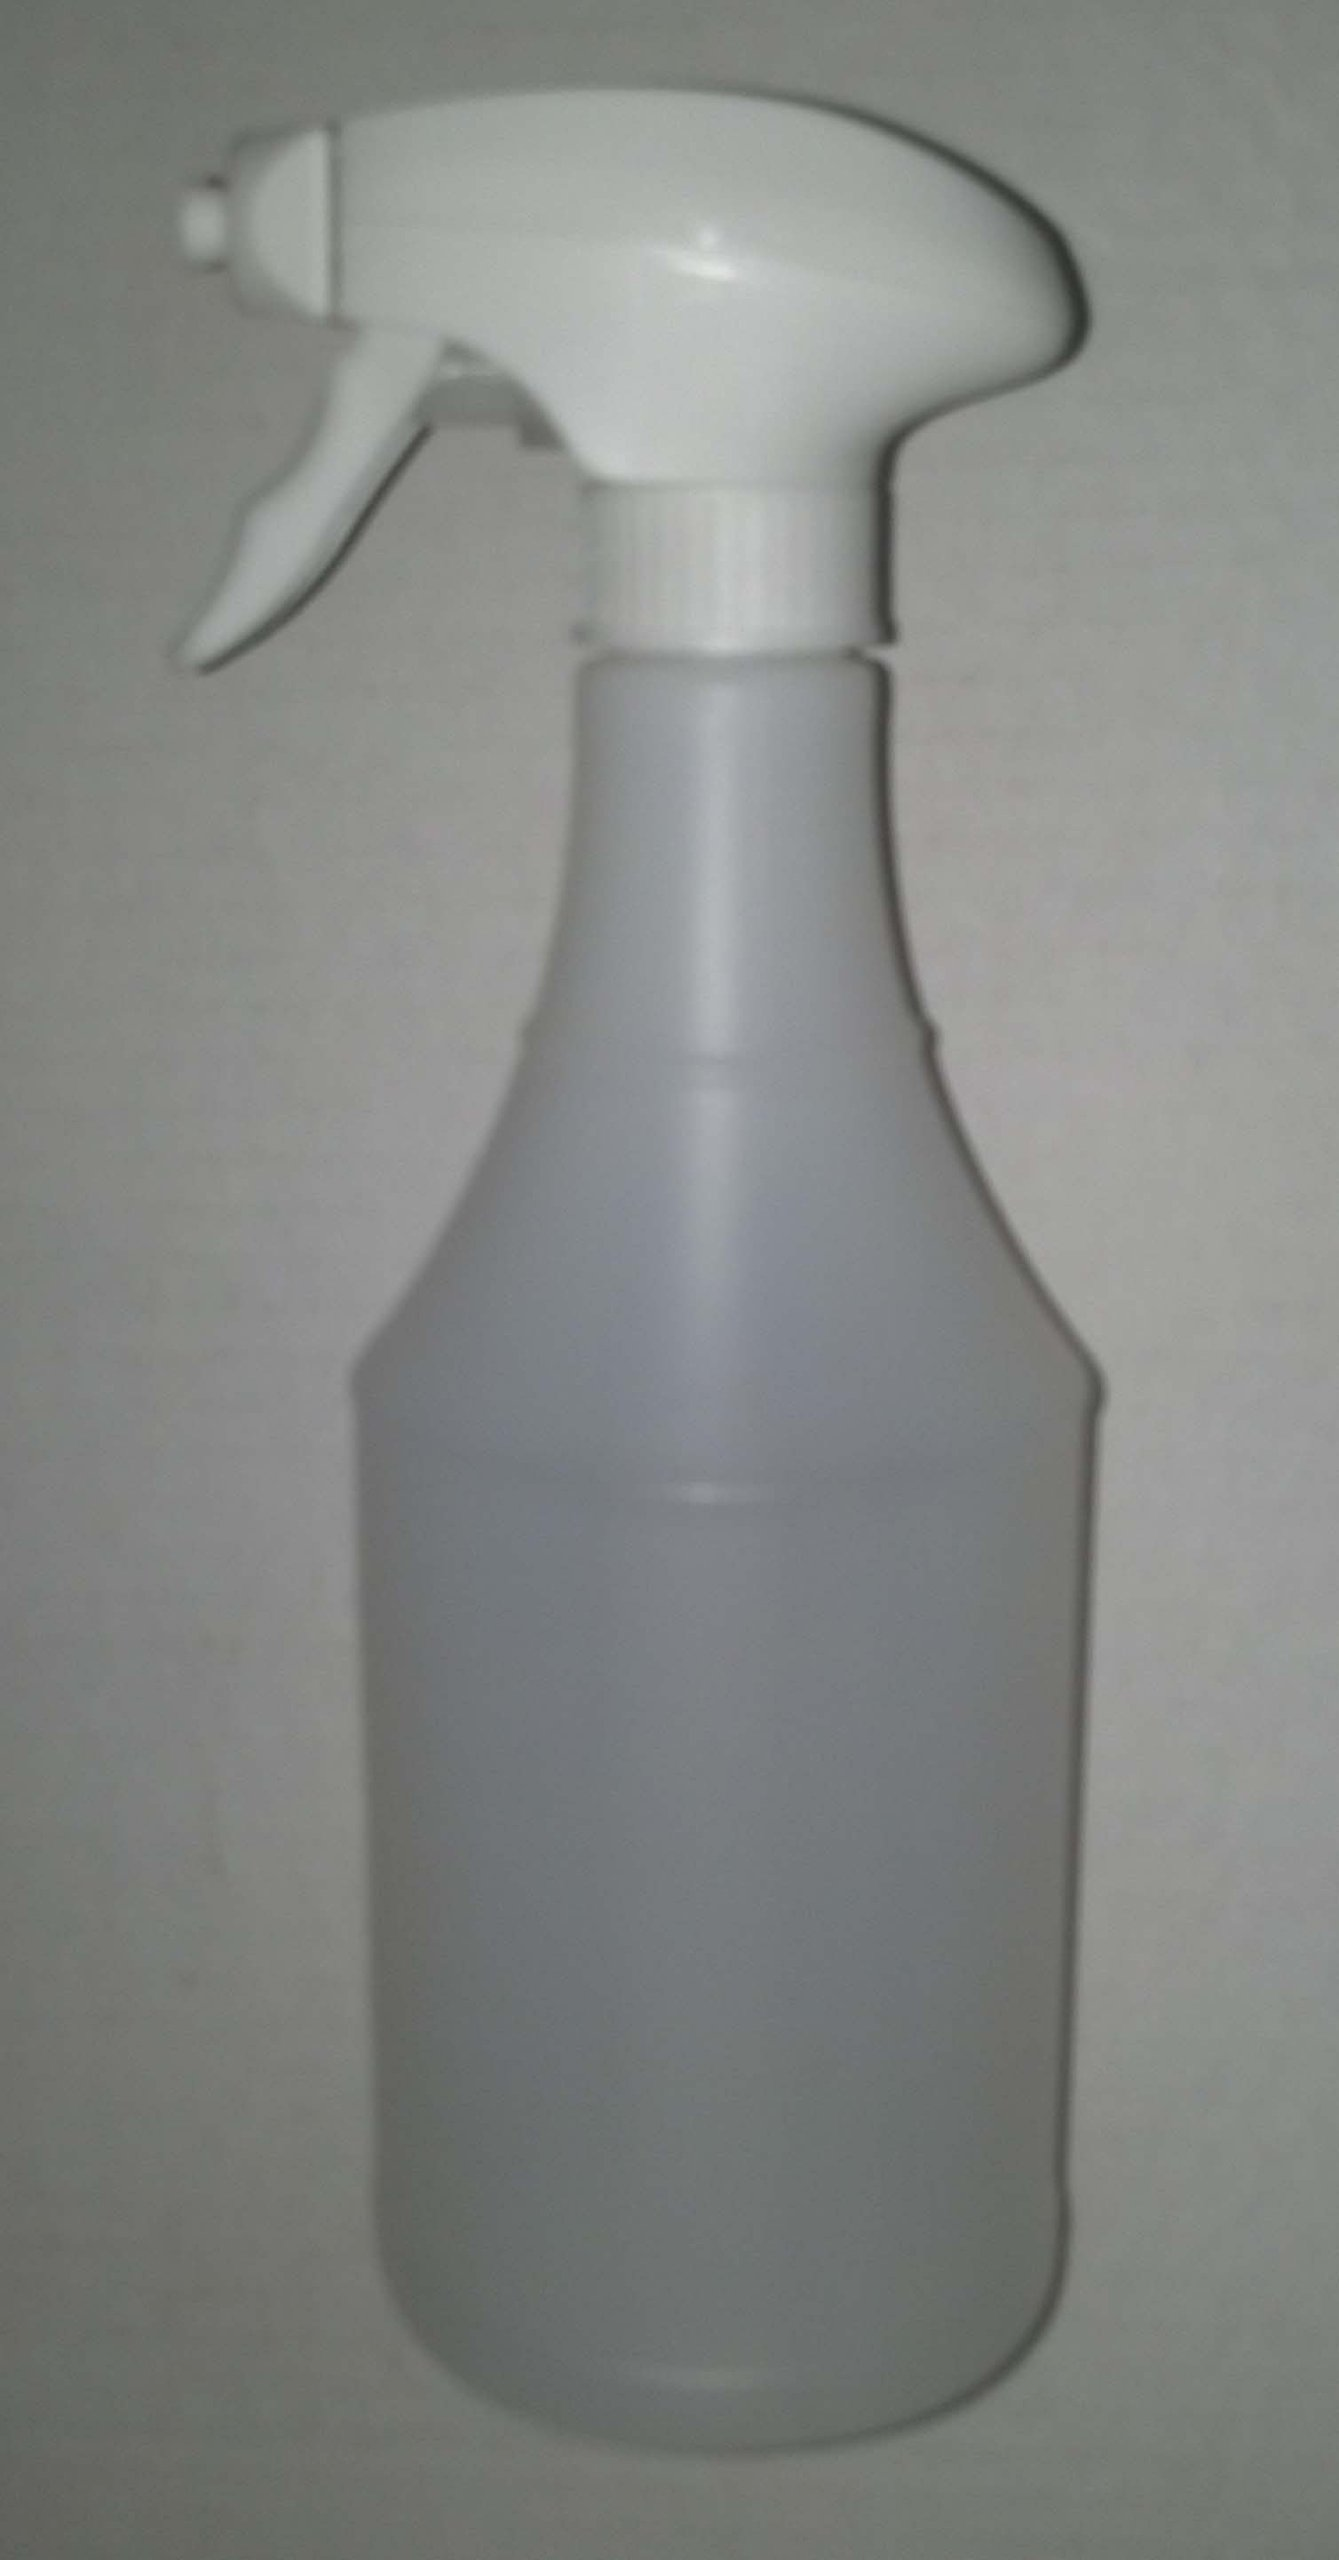 24 fl oz. Plastic Crafte Style Trigger Spray Bottle. Includes Foaming, Low Profile, Trigger Spray Head. Packaged 126 per box. by 4rproducts Inc